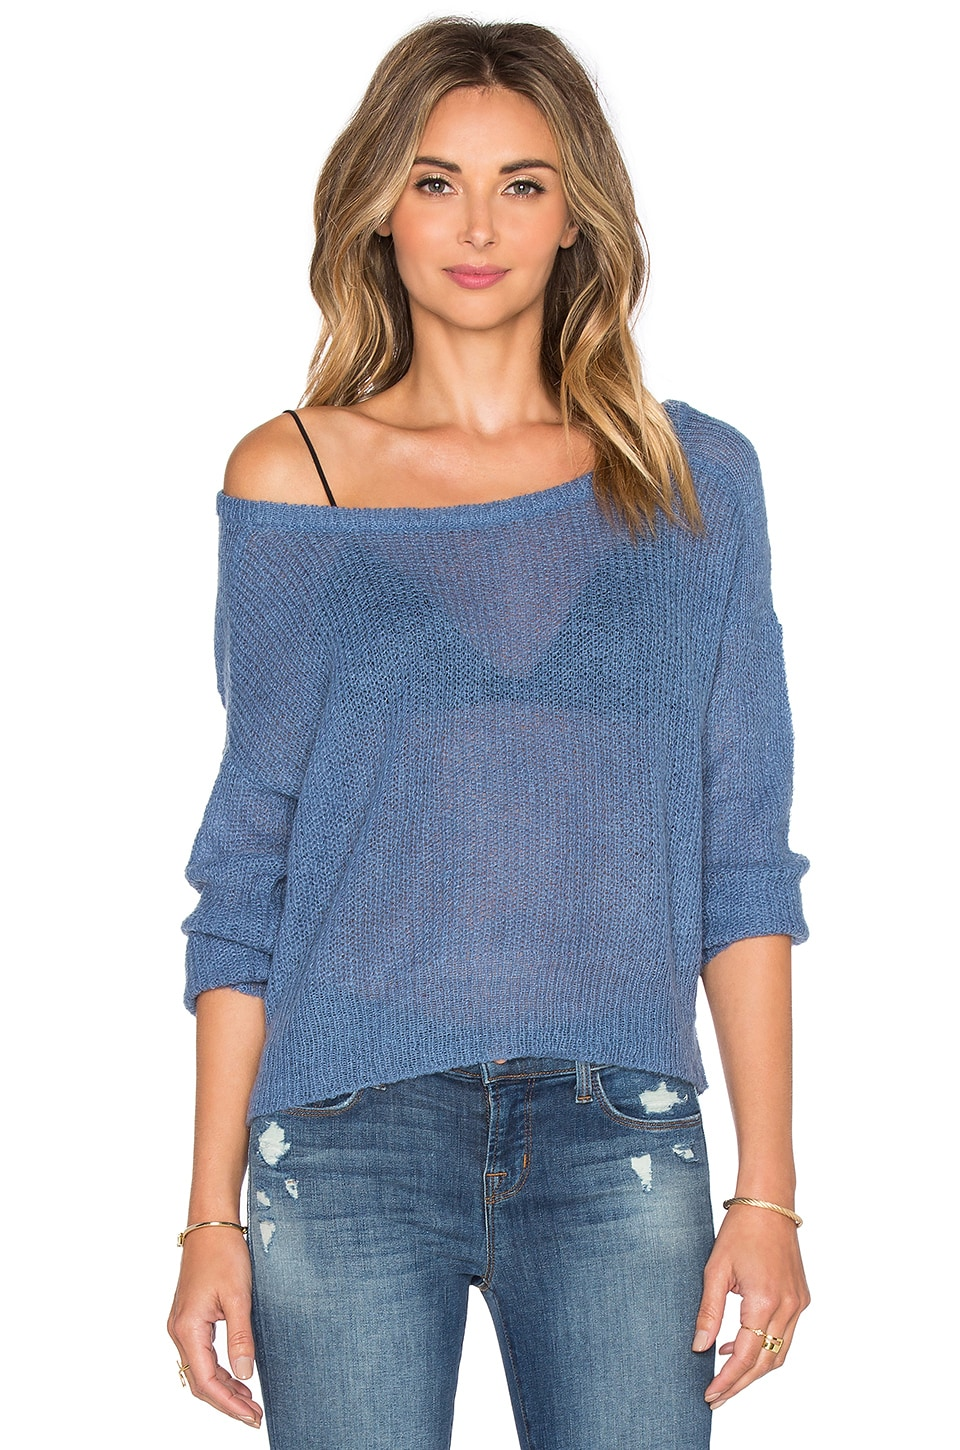 AMUSE SOCIETY Drifter Sweater in French Blue